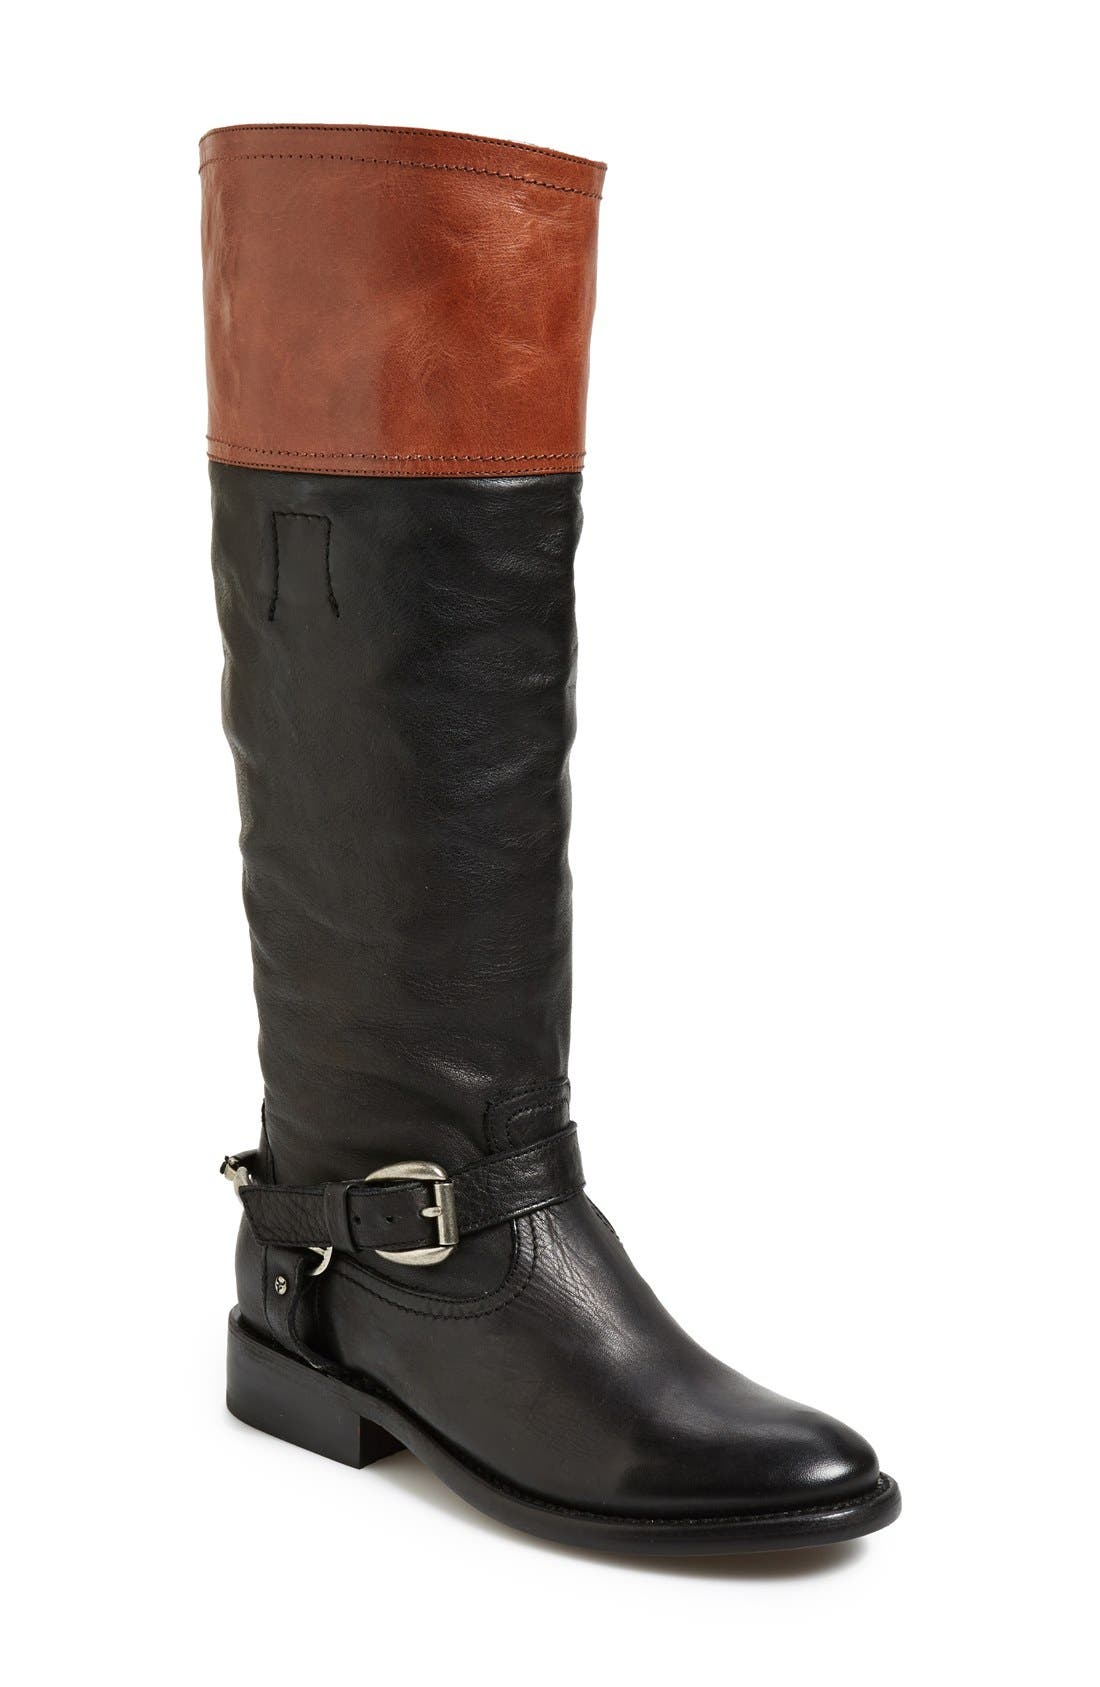 Alternate Image 1 Selected - Trask 'Addison' Riding Boot (Women)